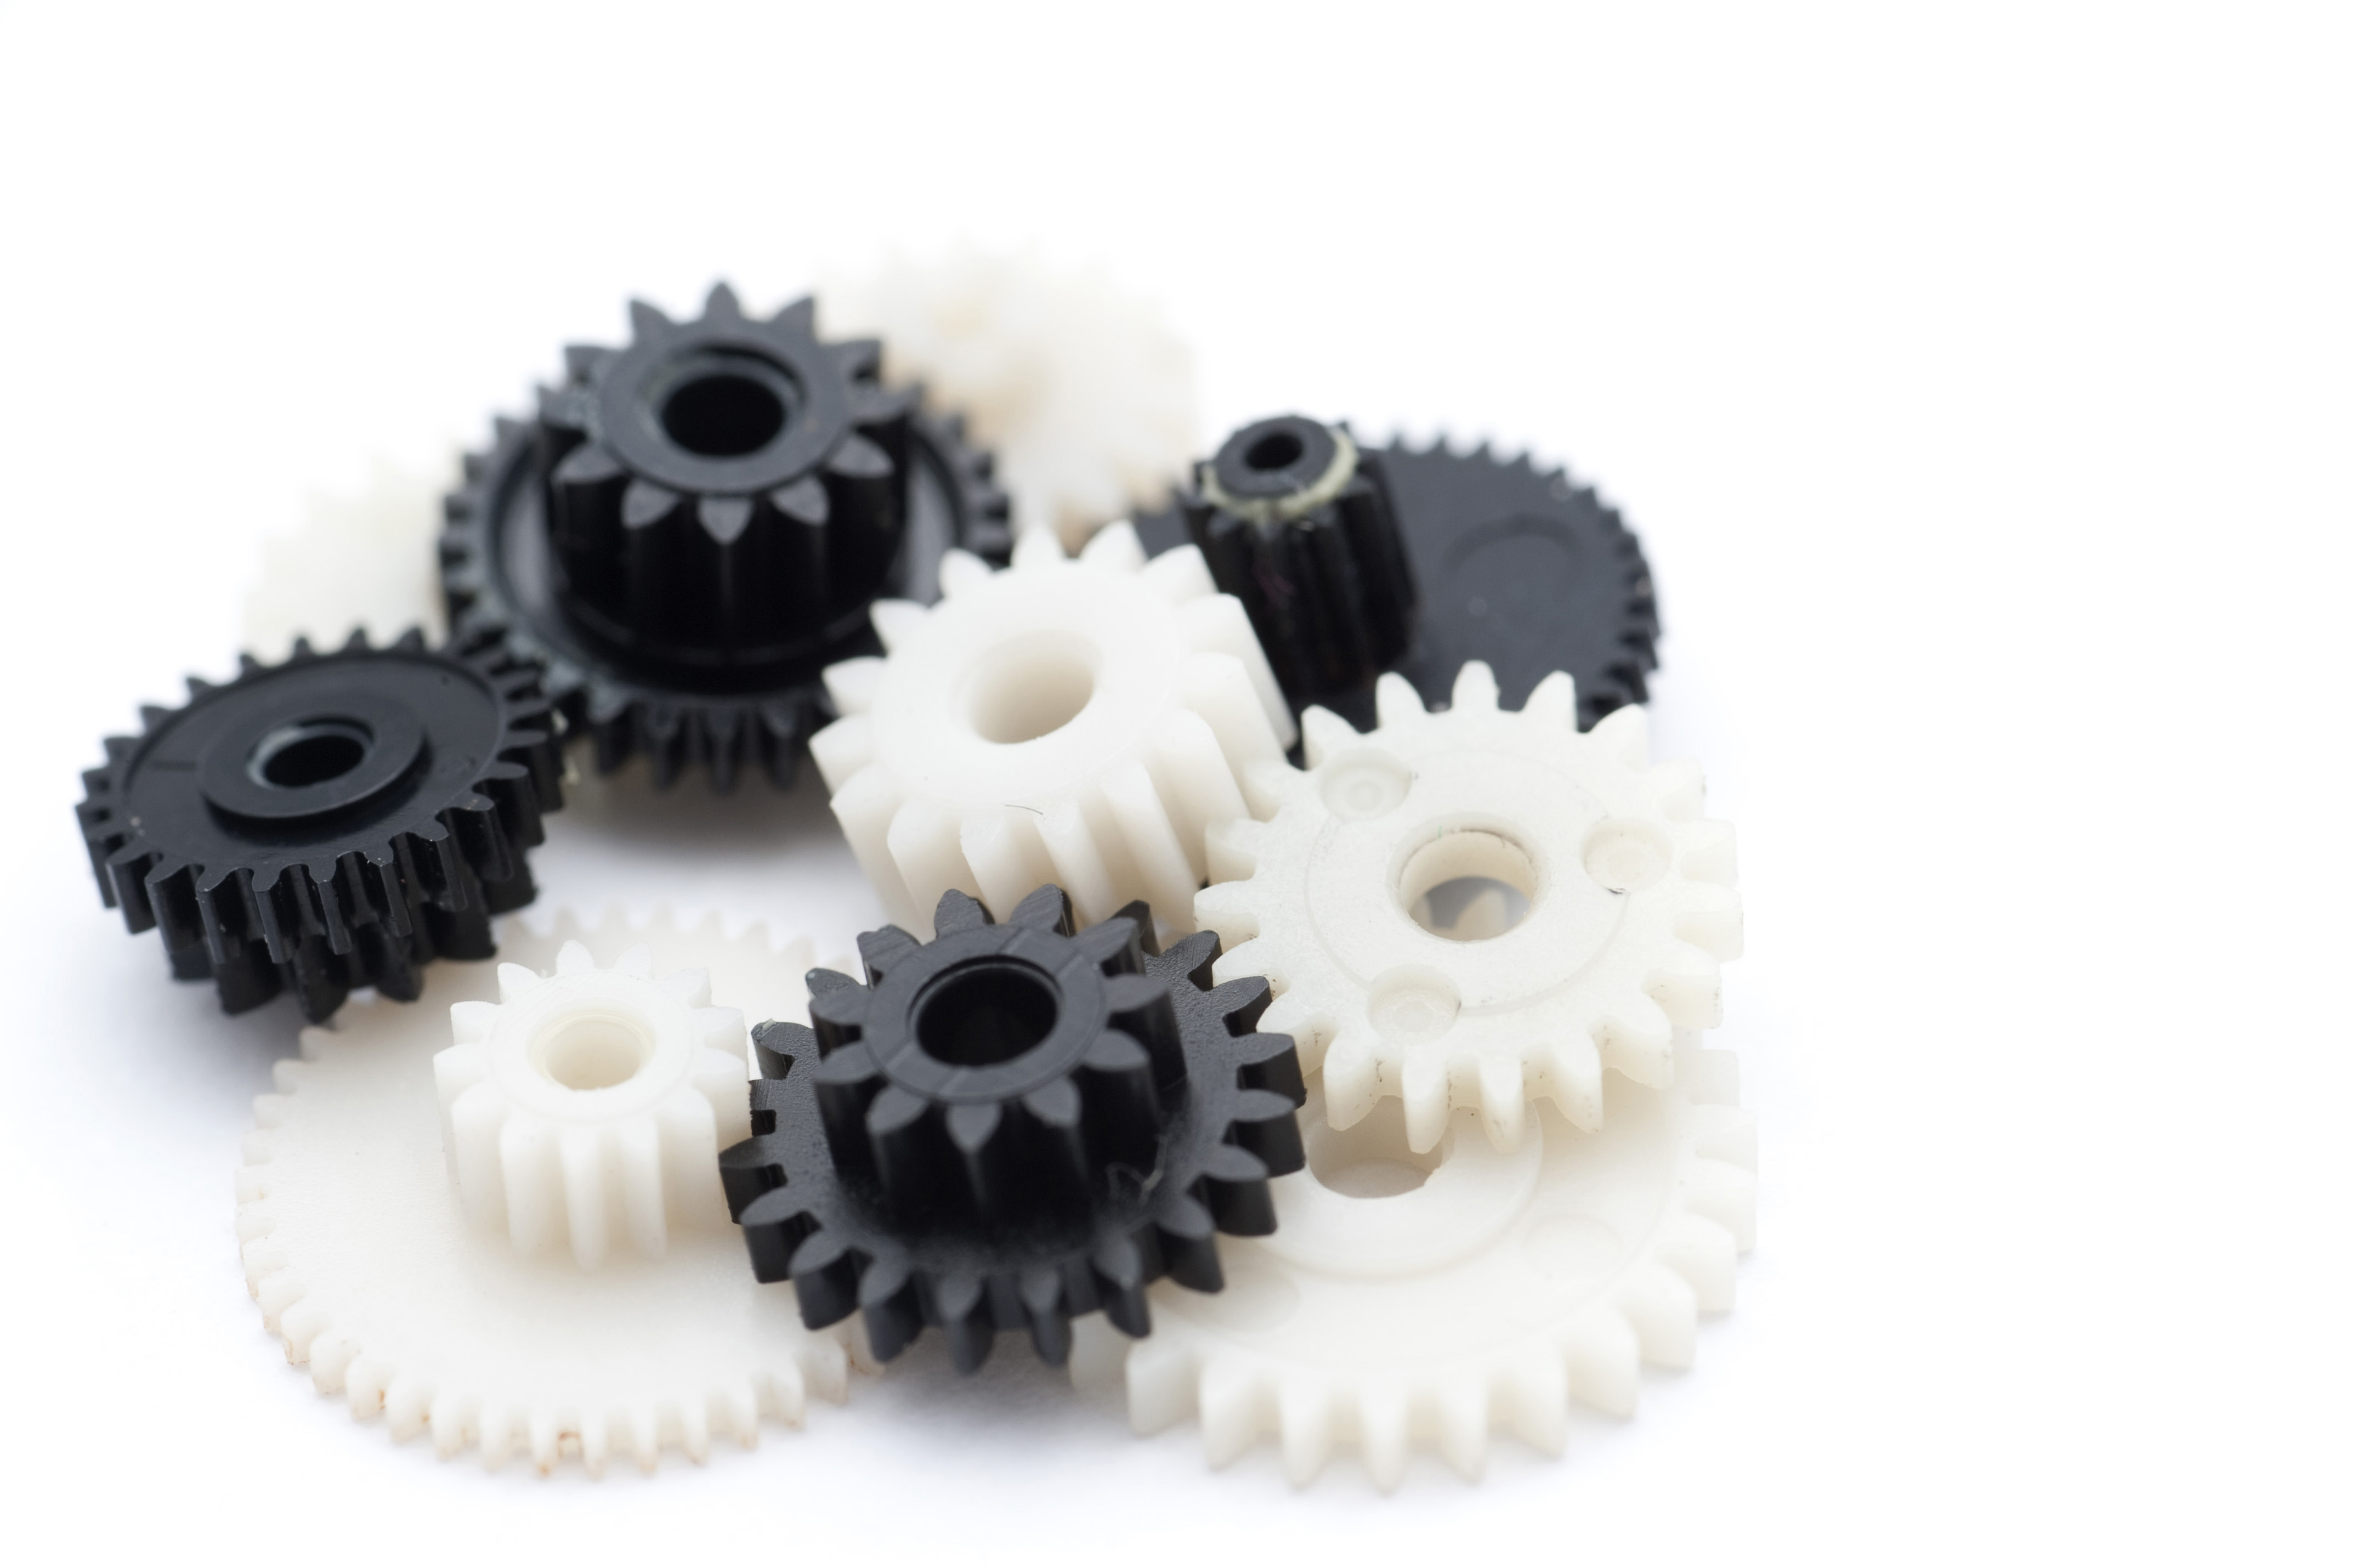 Close up Black and White Plastic Cog Gears Isolated on White Background.